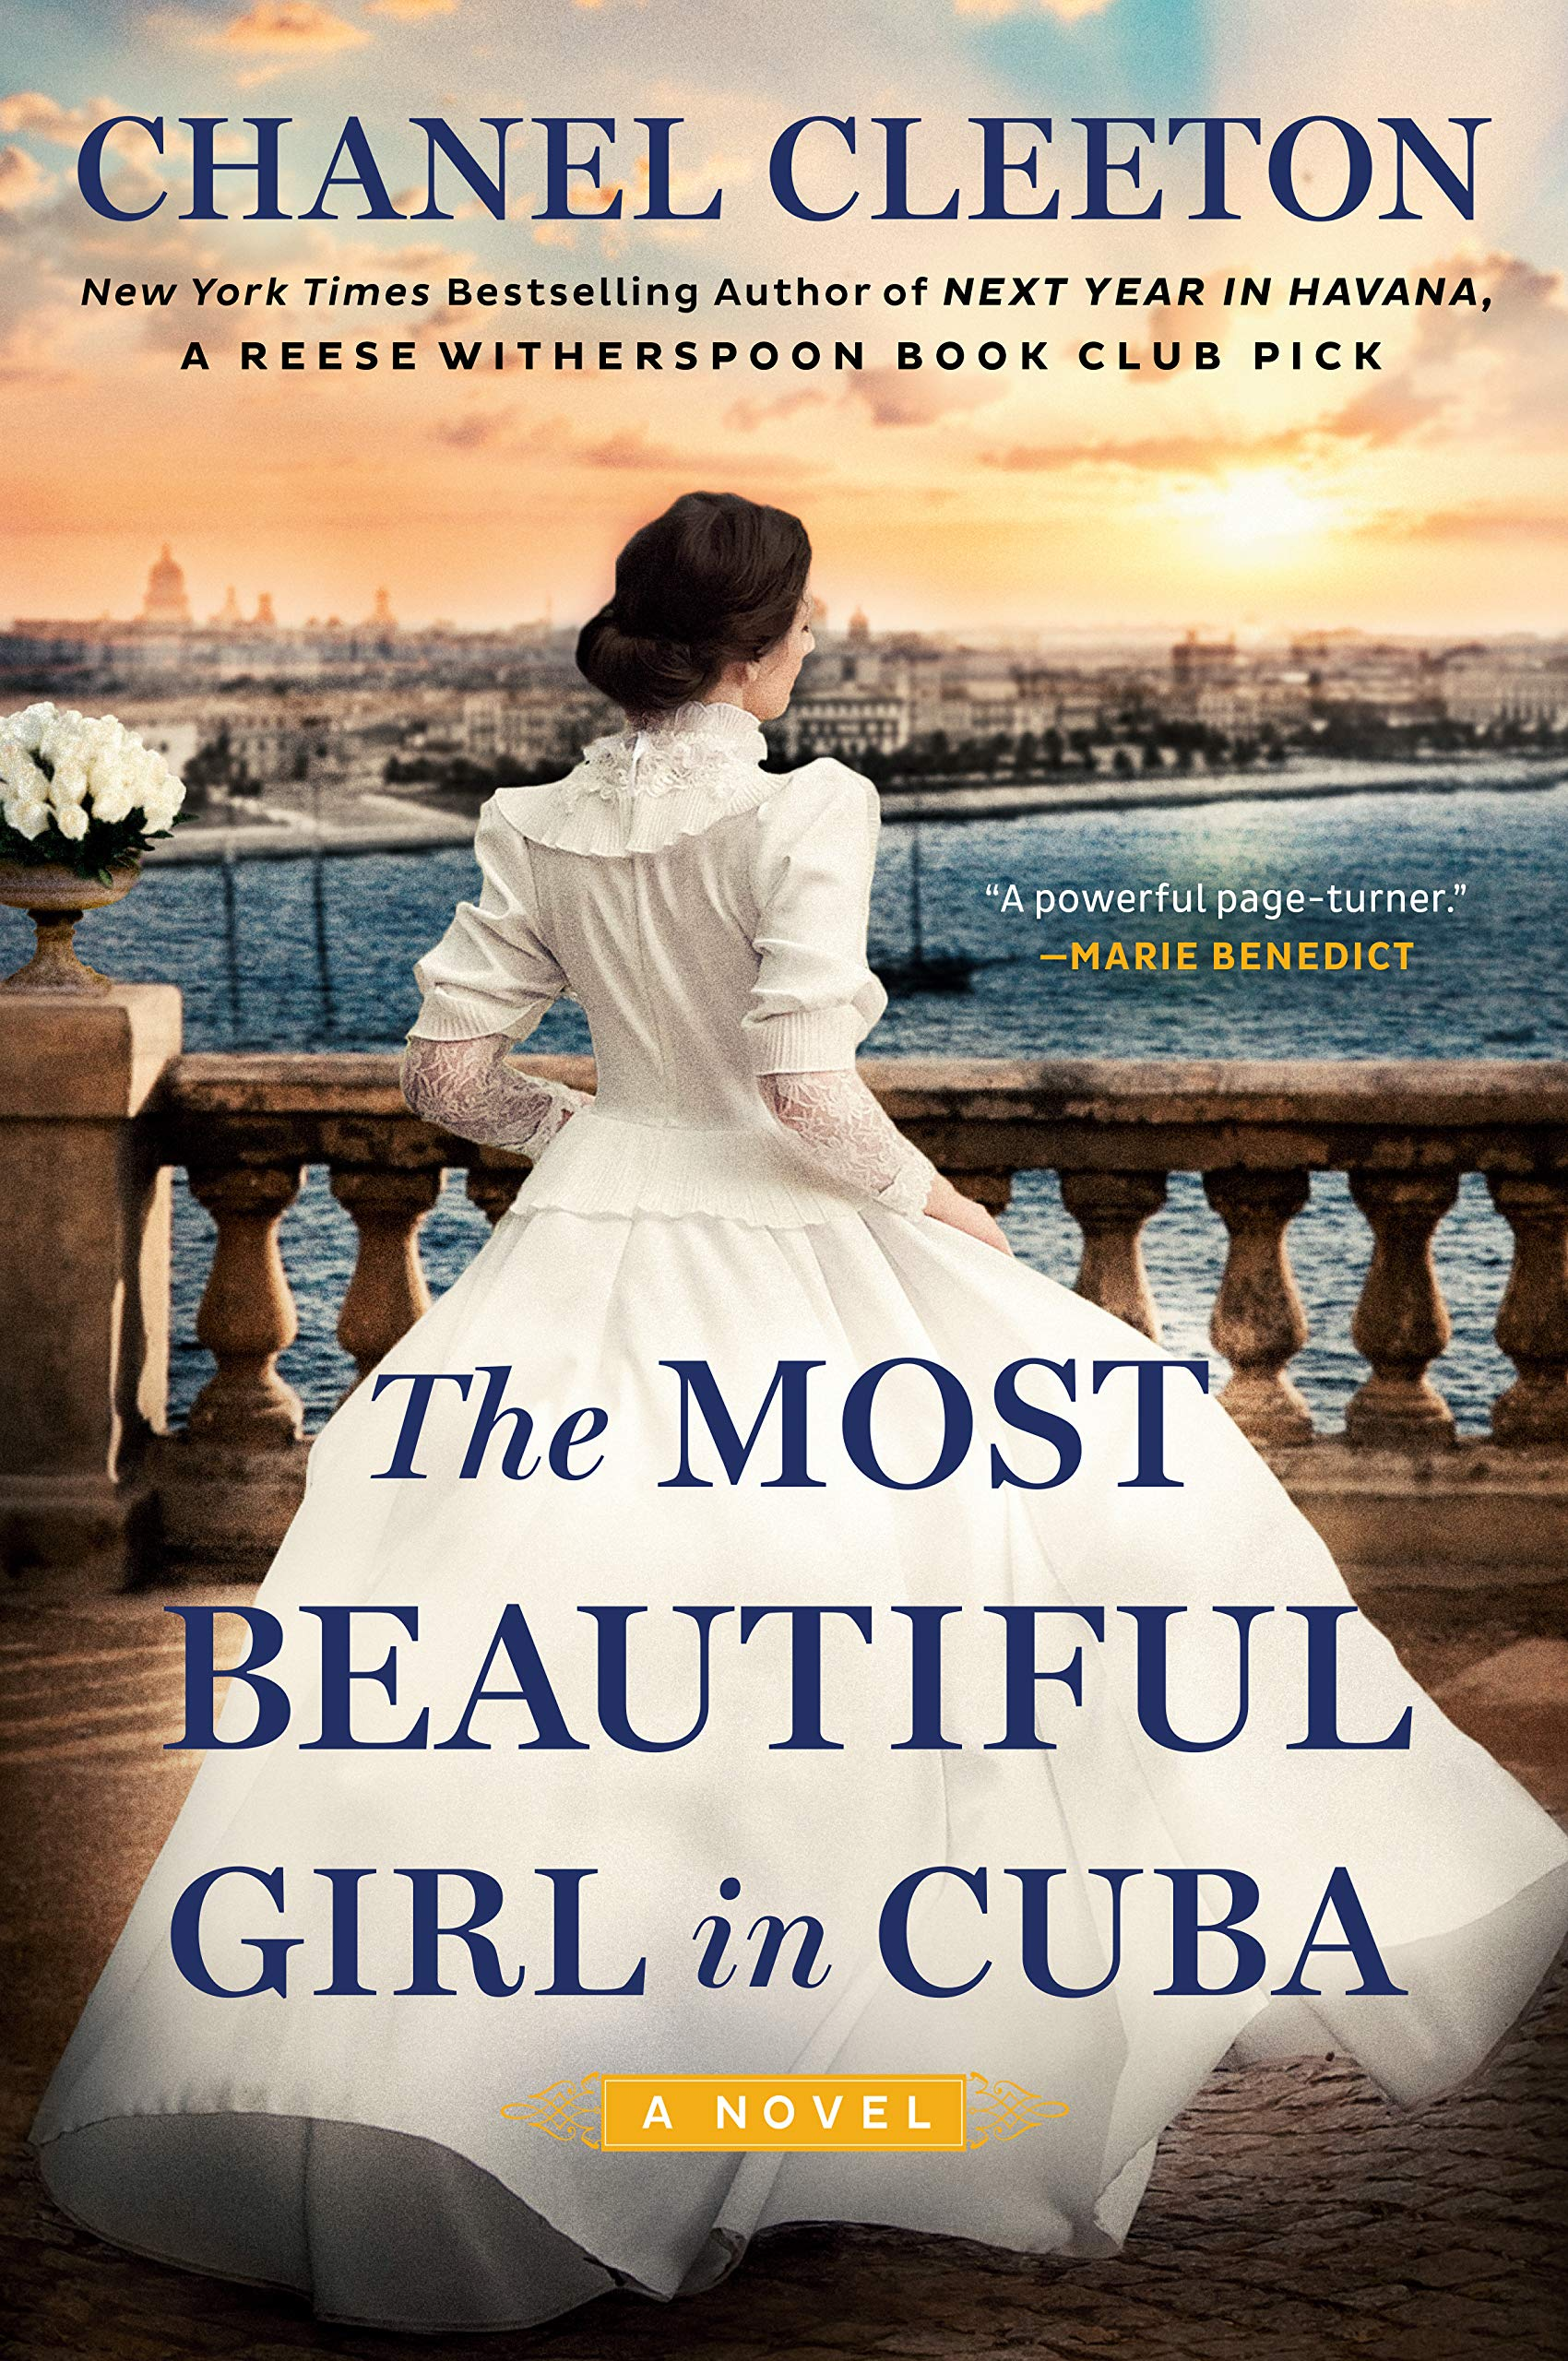 The Most Beautiful Girl in Cuba by Chanel Cleeton